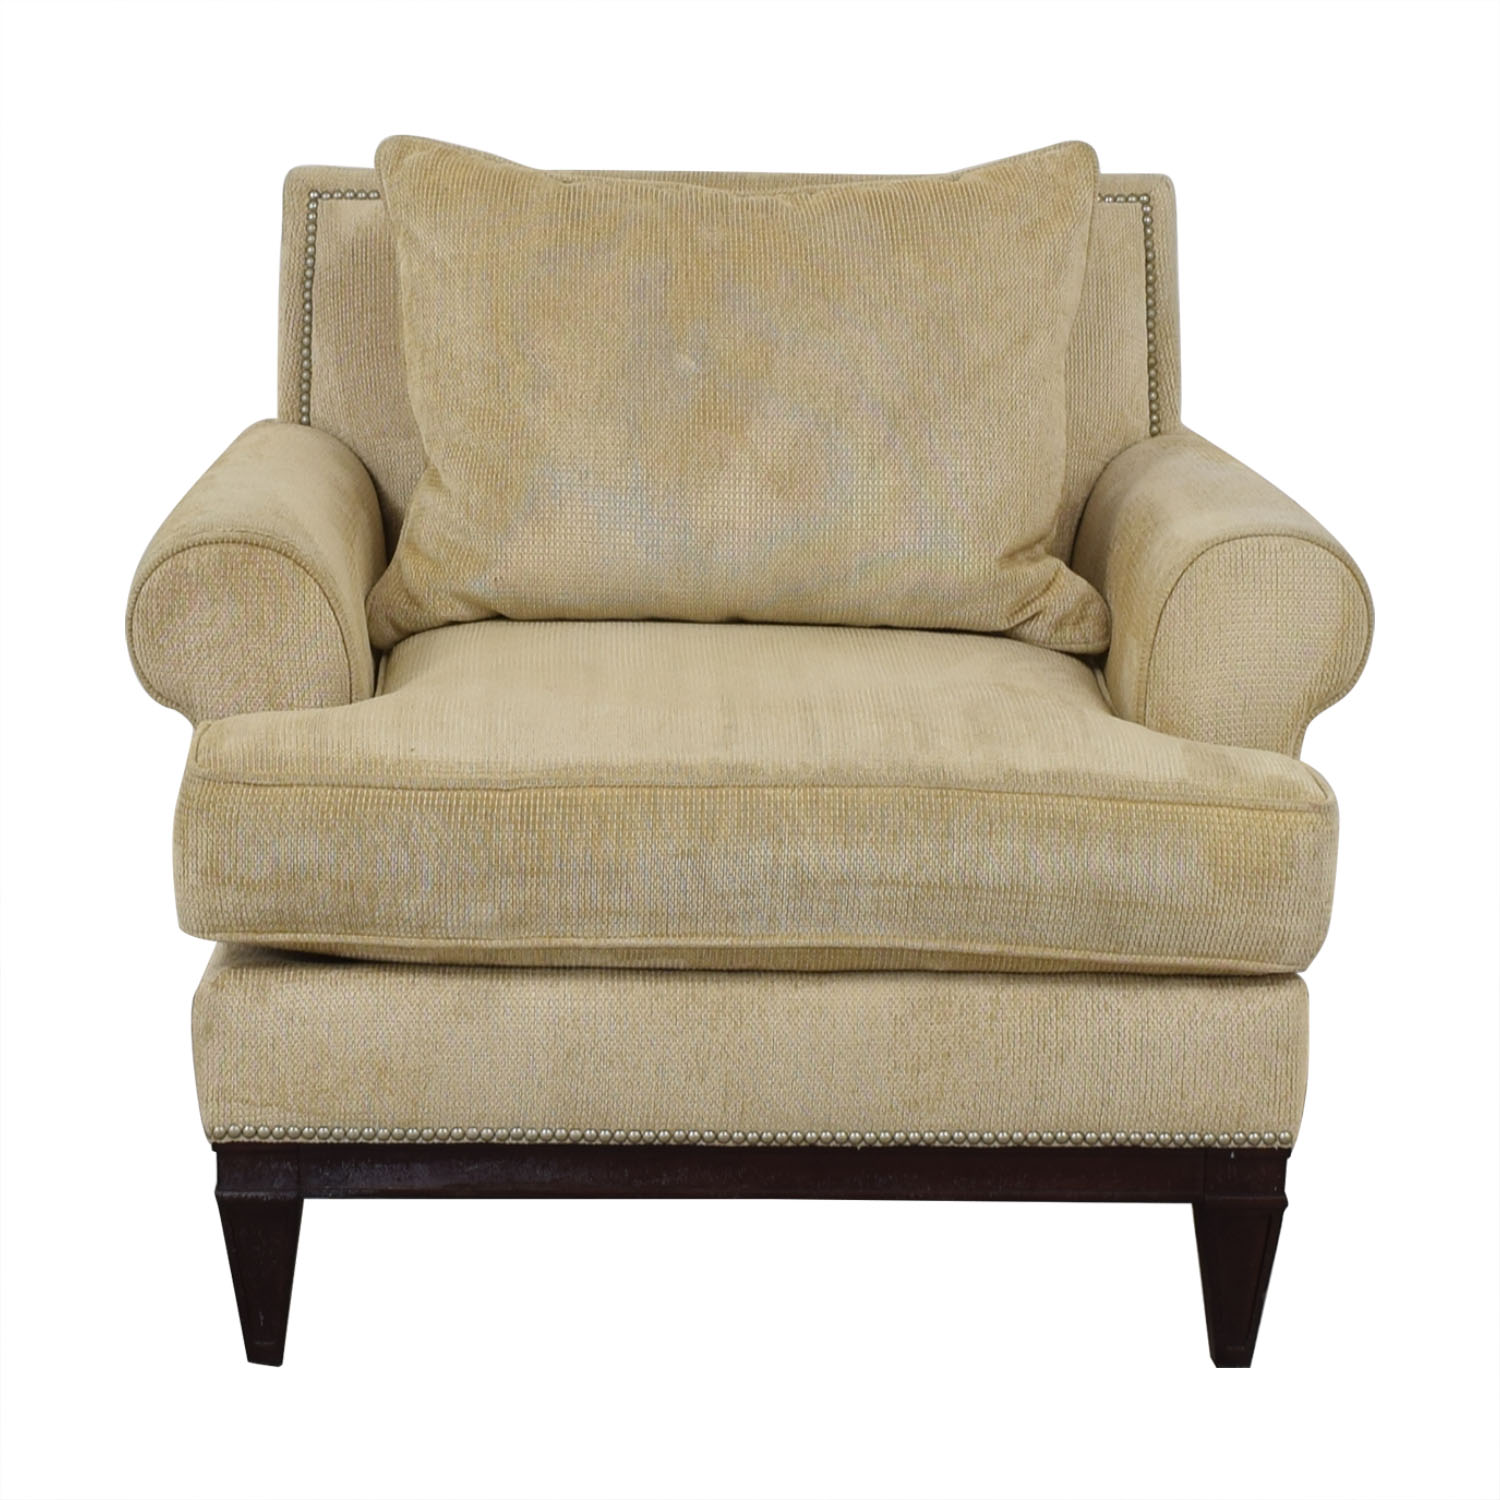 Bernhardt Bernhardt Roll Arm Accent Chair discount